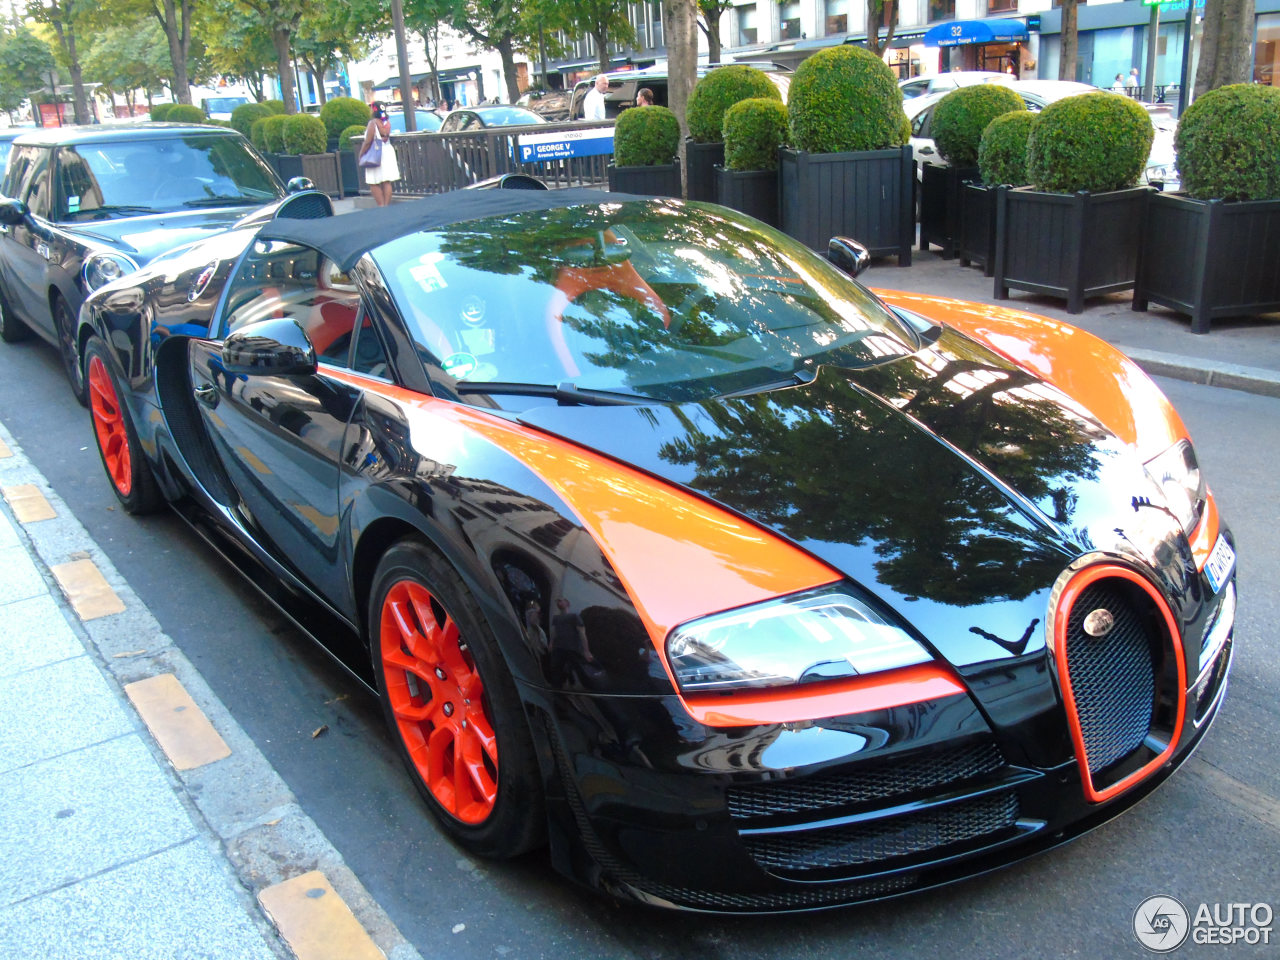 bugatti veyron 16 4 grand sport vitesse world record car edition 14 july 2016 autogespot. Black Bedroom Furniture Sets. Home Design Ideas